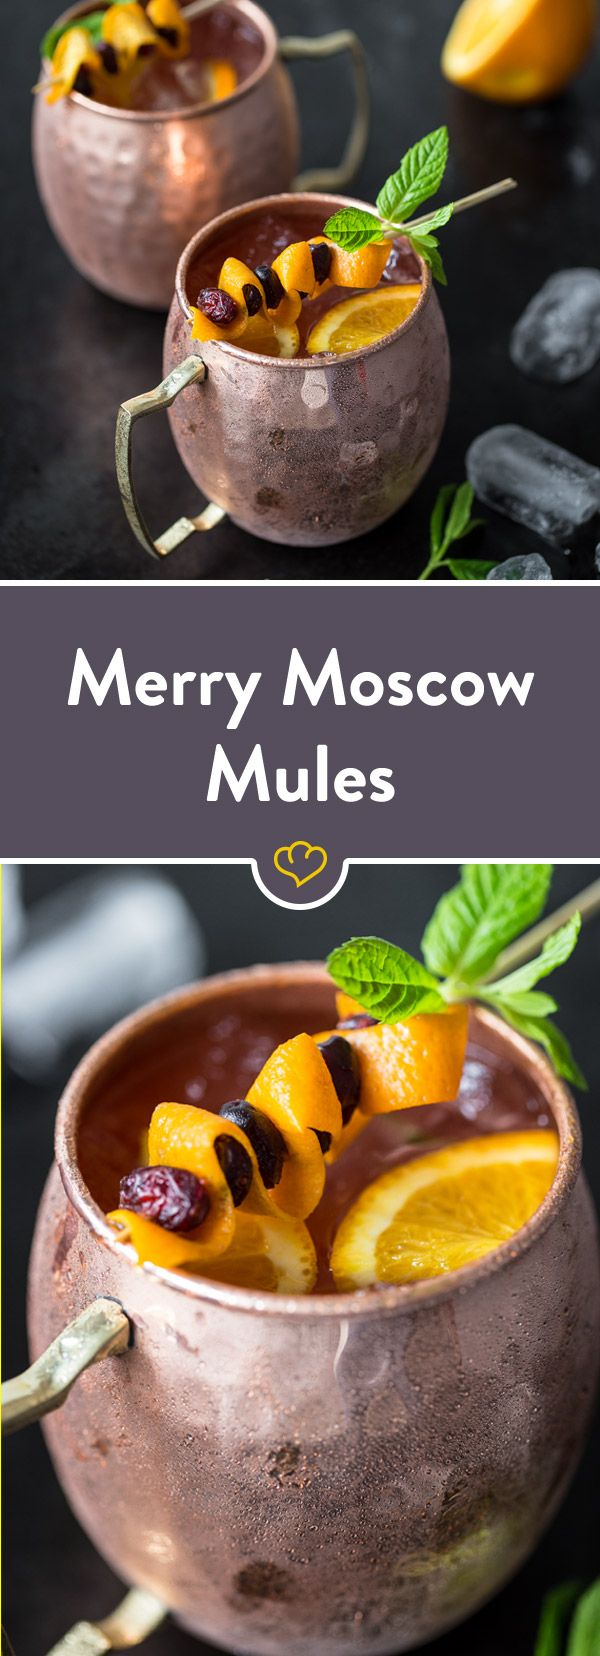 Der Klassiker als Winteredition: Merry Moscow Mules